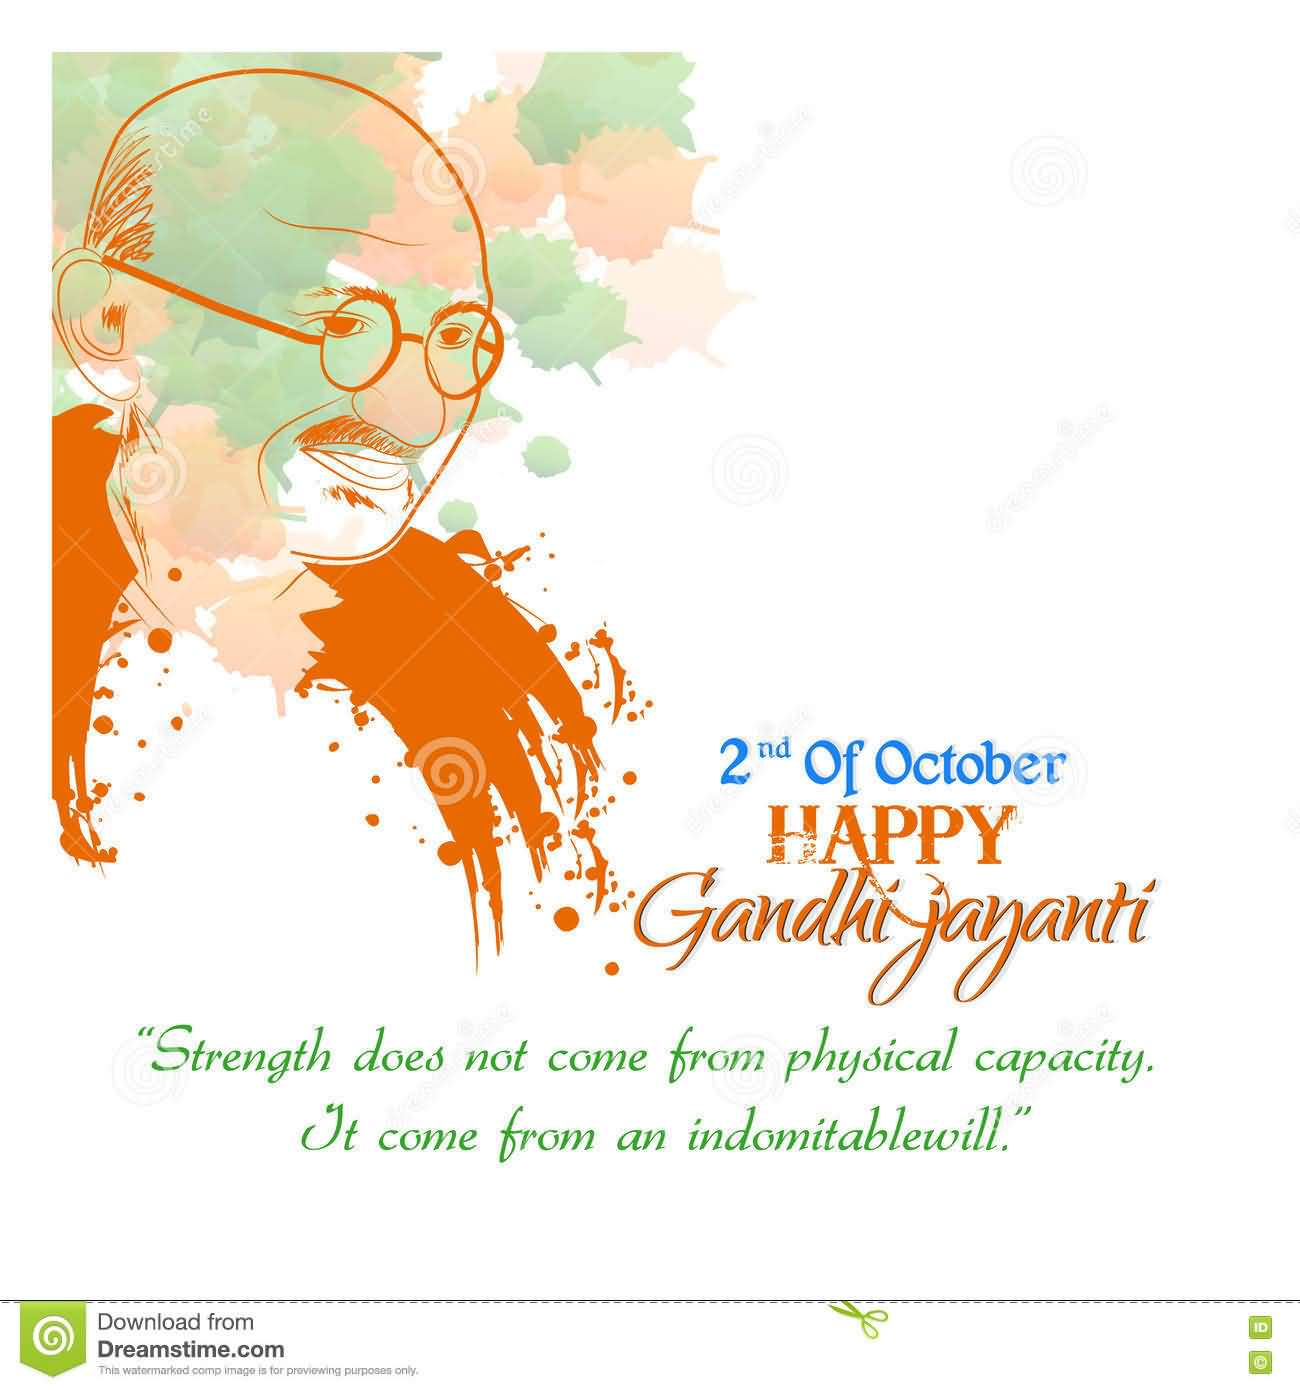 55 Best Happy Gandhi Jayanti 2018 Greeting Pictures And Photos